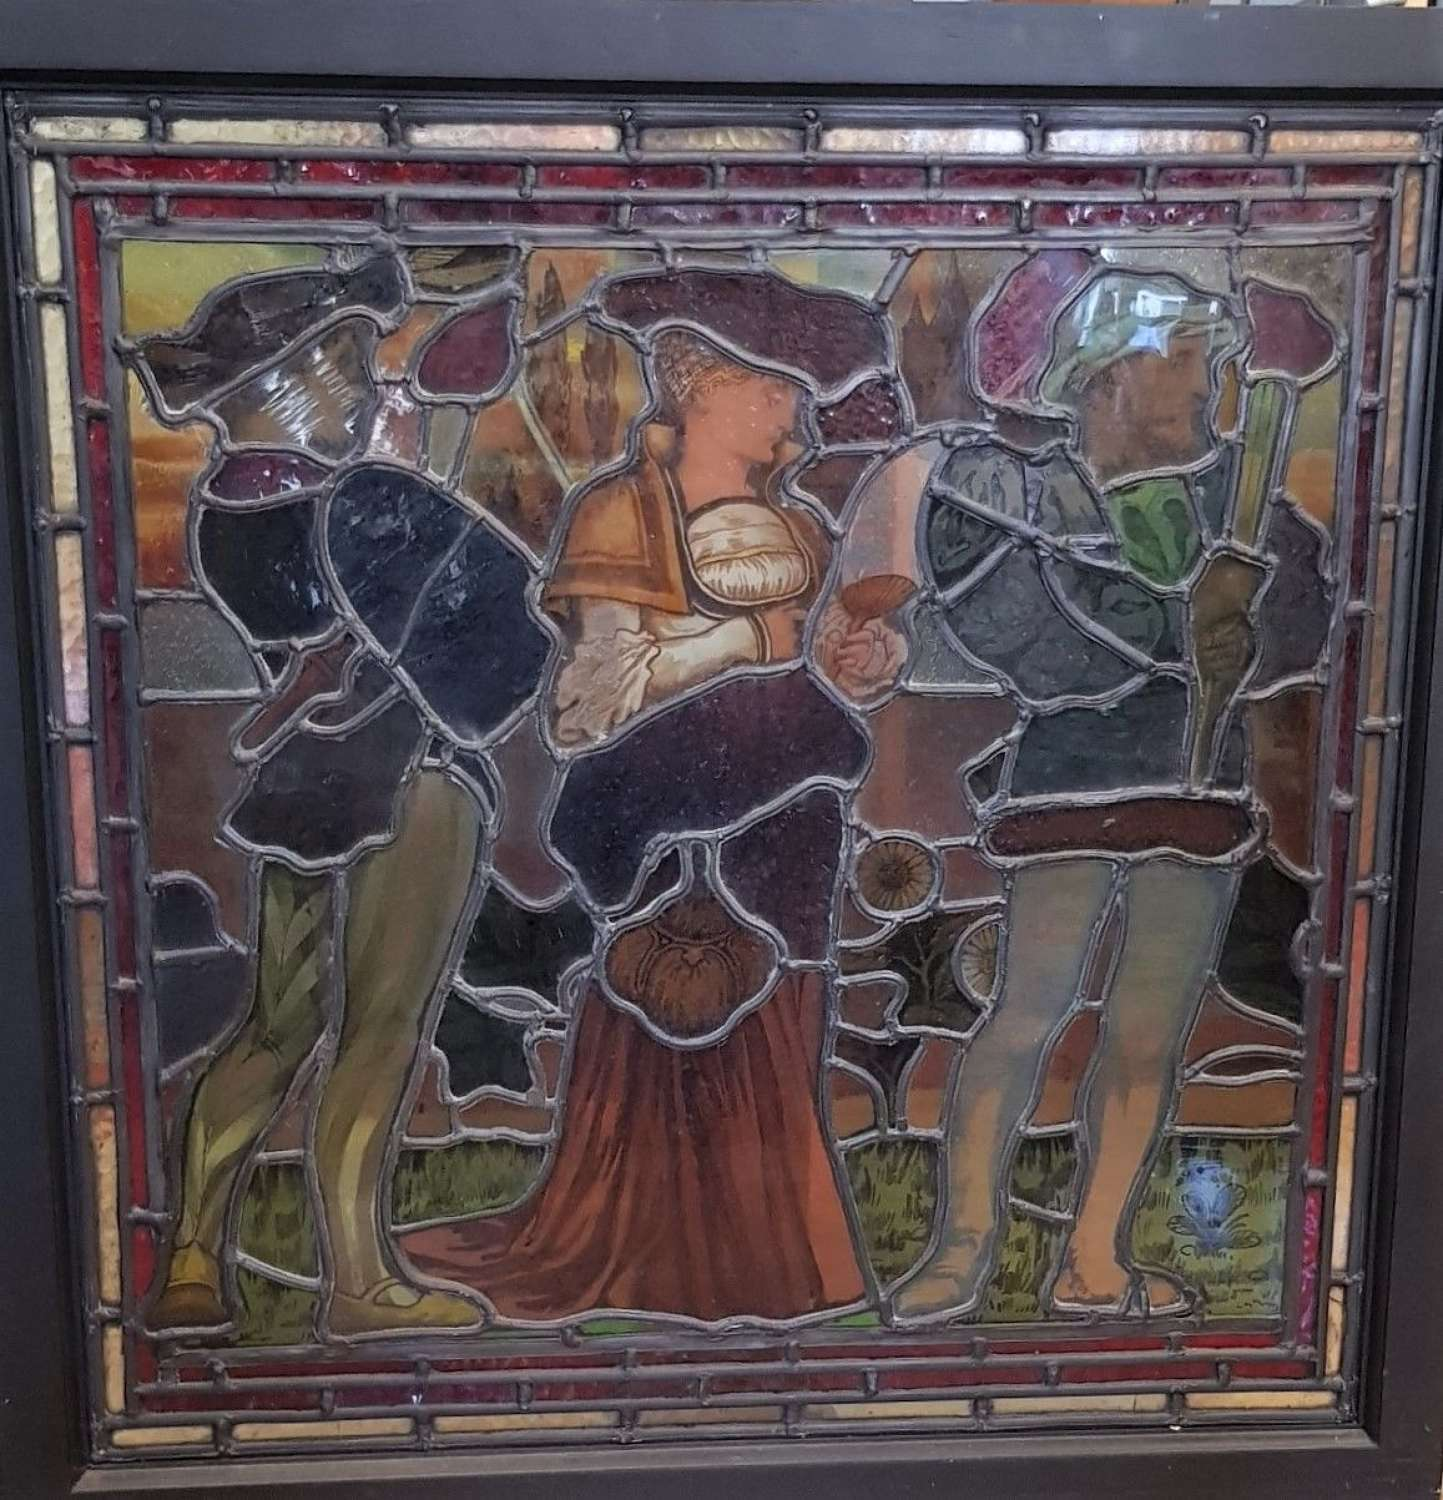 Arts & Crafts stained glass panel